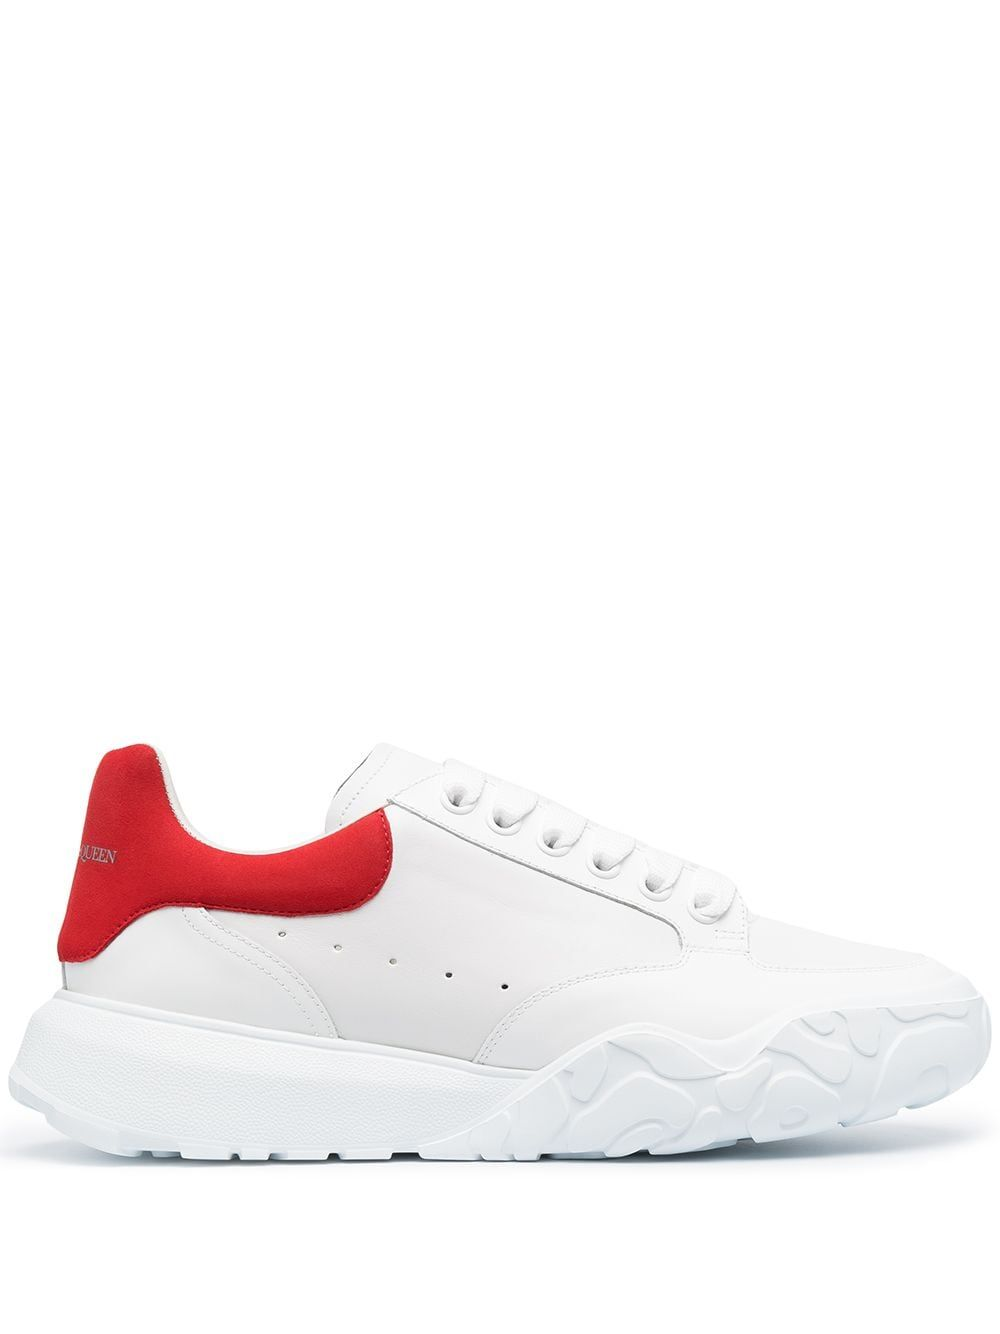 Alexander Mcqueen ALEXANDER MCQUEEN MEN'S WHITE LEATHER SNEAKERS